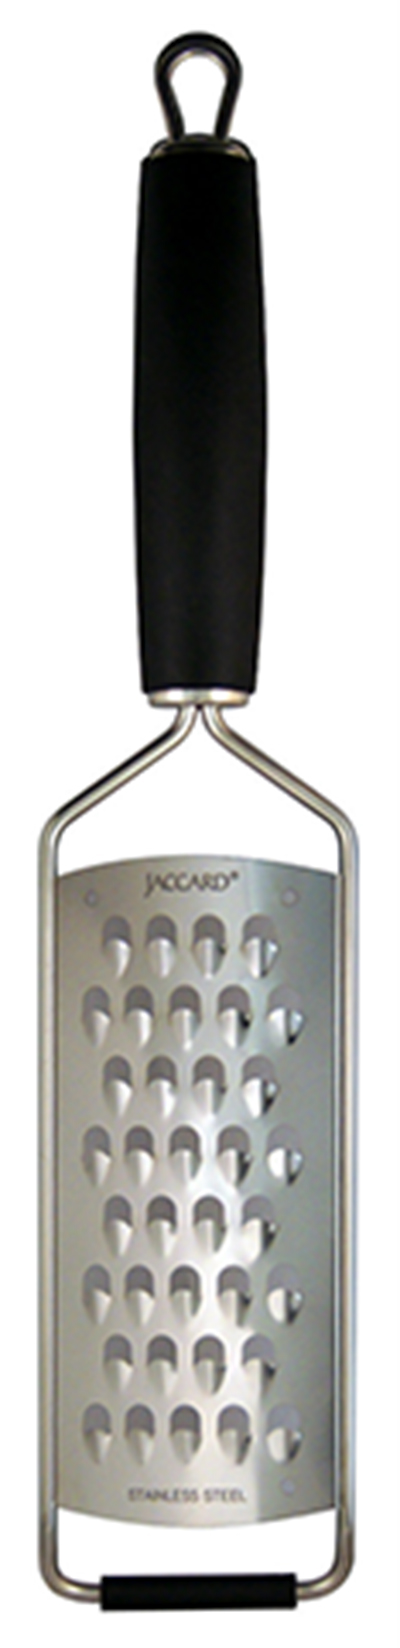 Jaccard 201201GXC Extra Coarse Grater w/ Mic